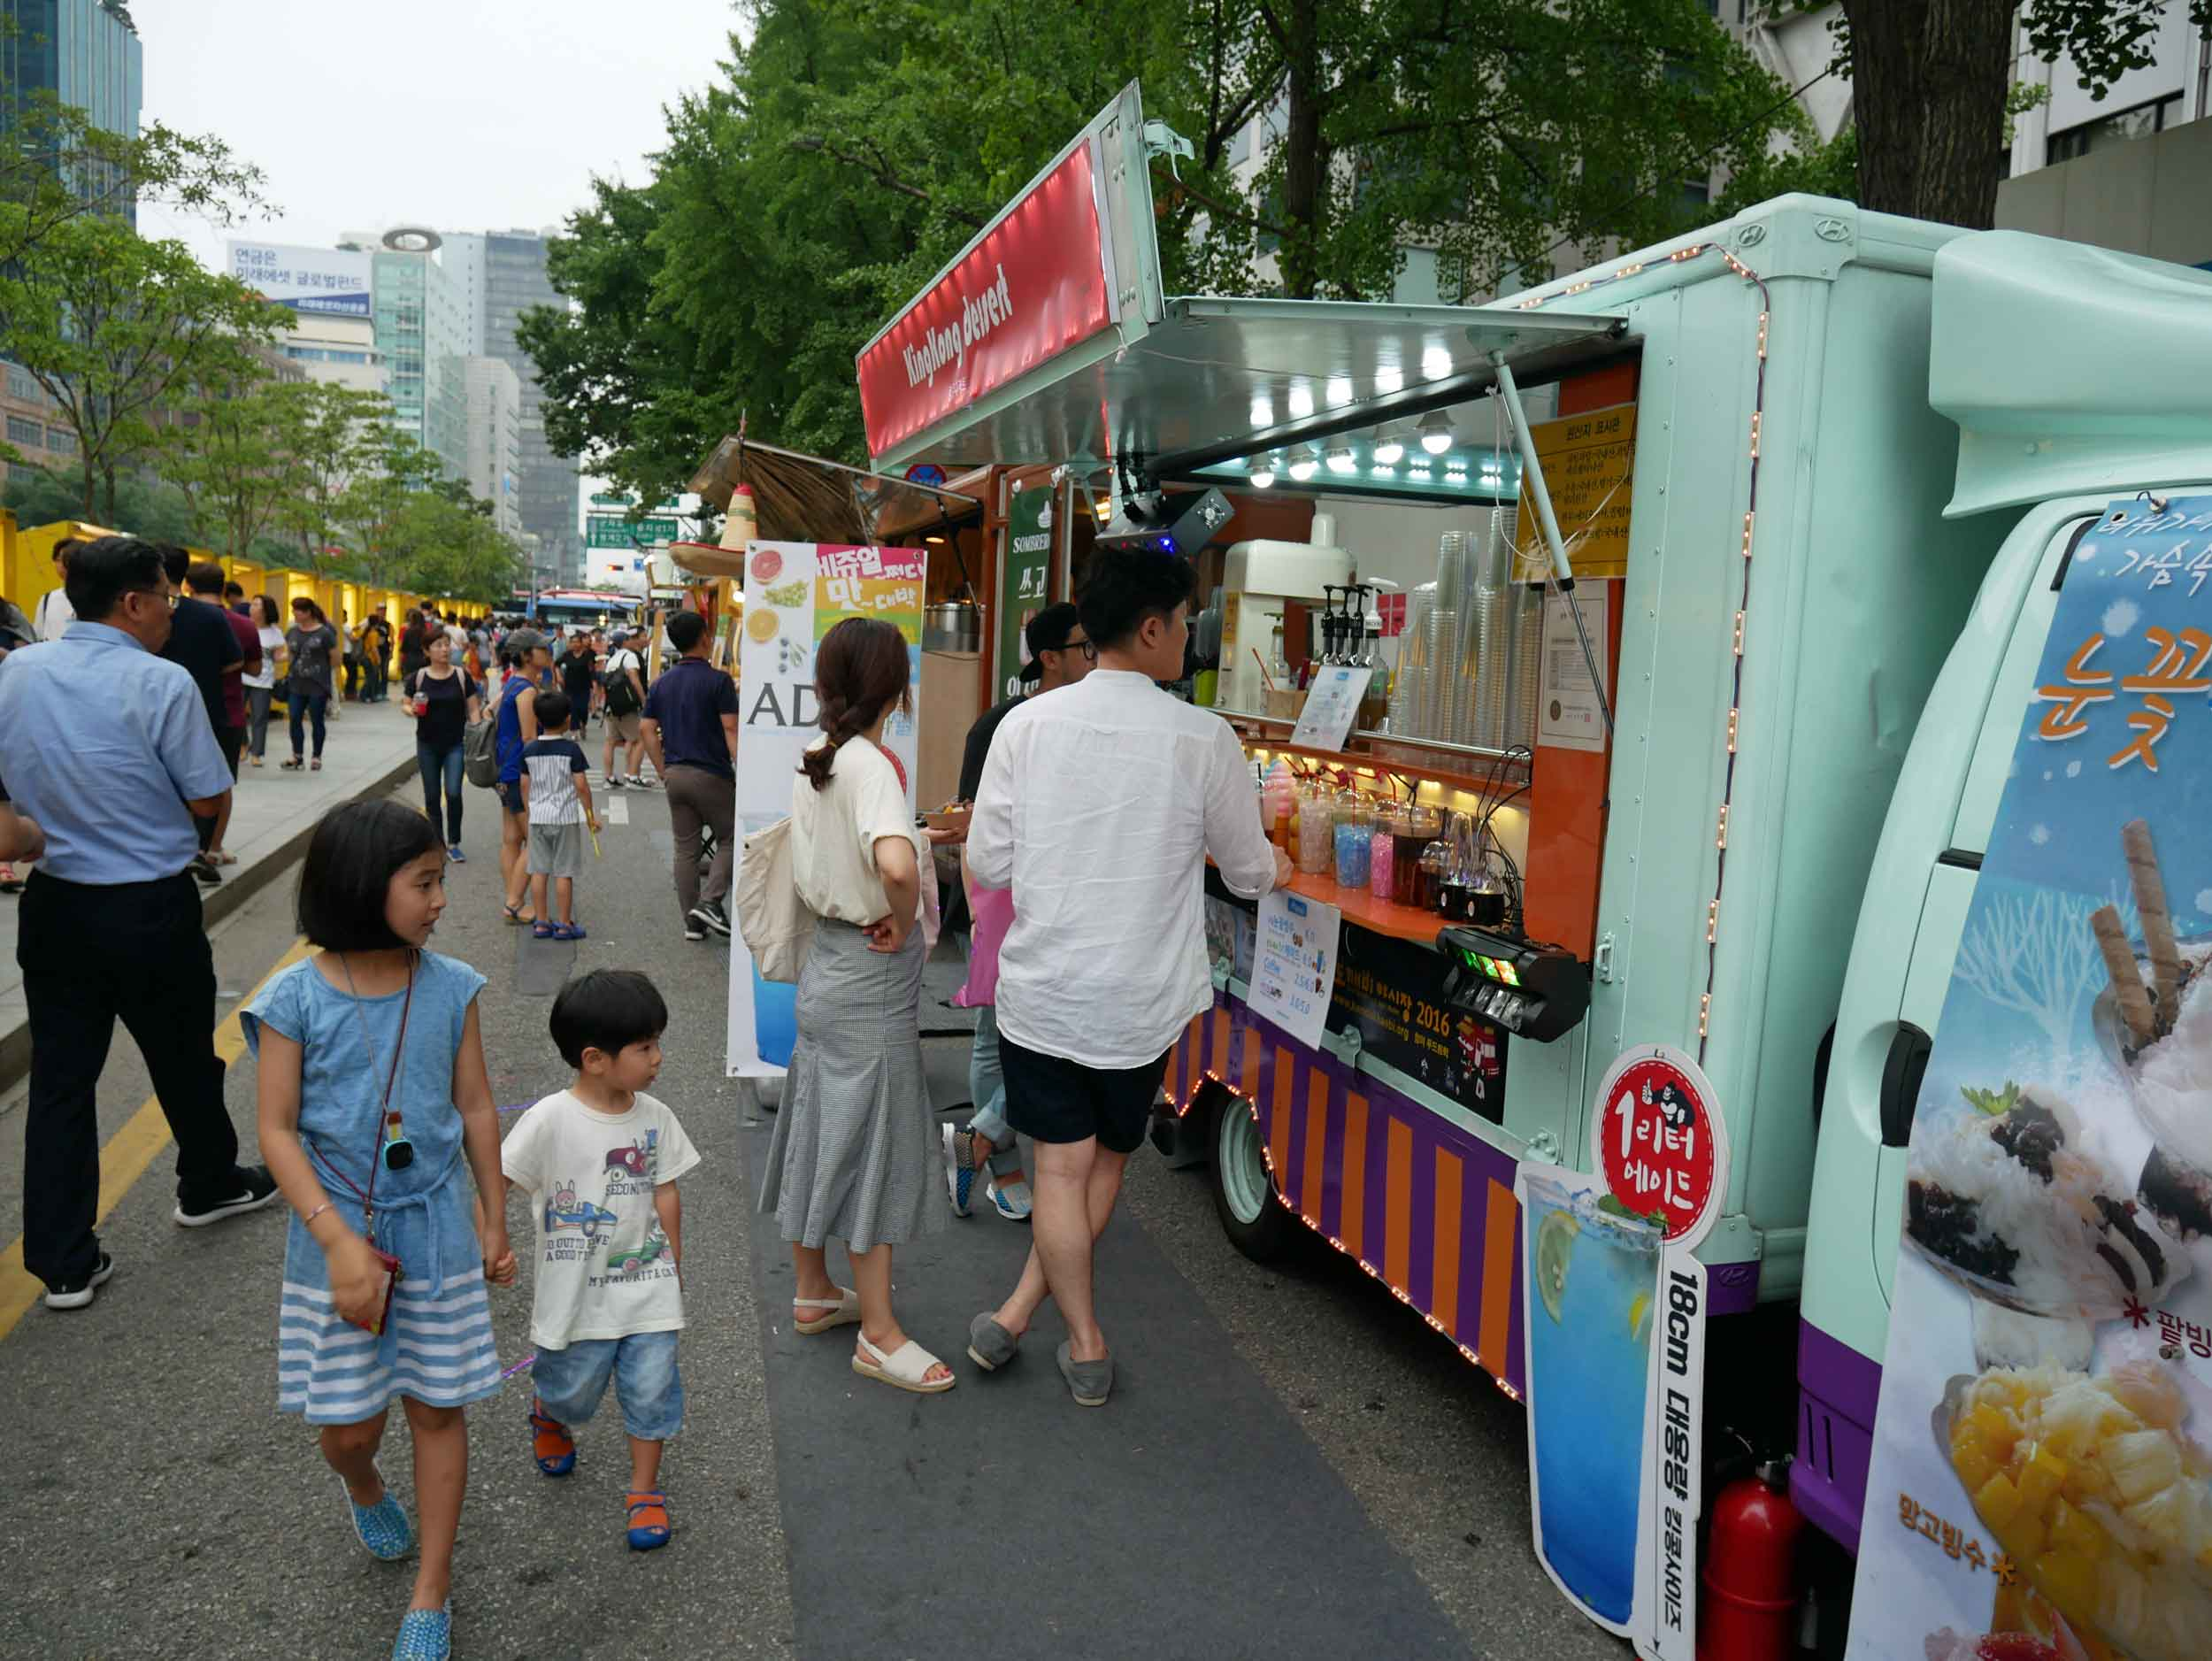 We stumbled upon a lively food and crafts market along a small canal.